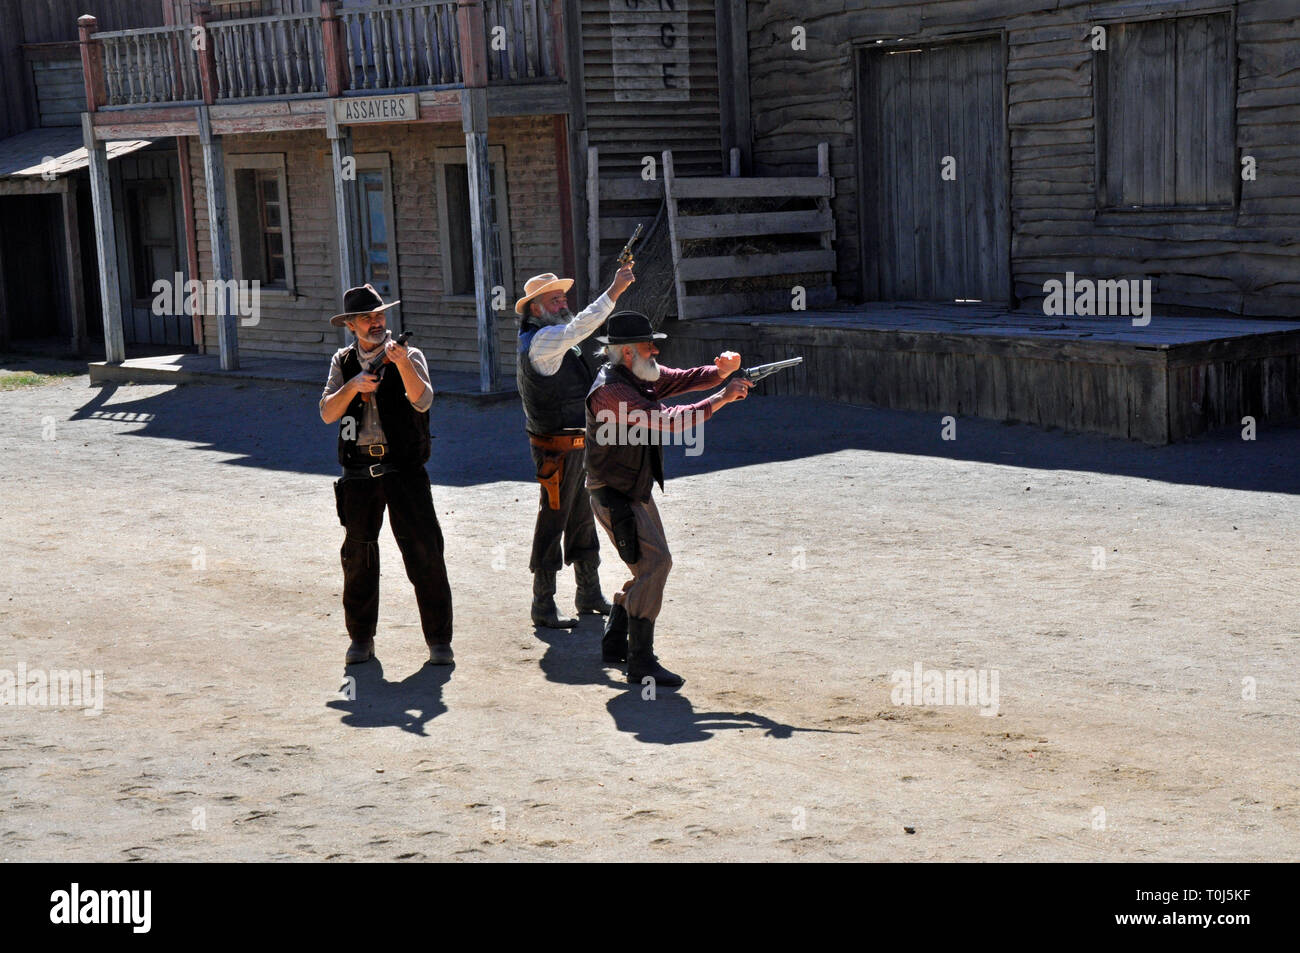 Cowboy actors re-enact a gunfight scene for tourists on a former Western film set in Tabernas, Almeria, Spain. - Stock Image